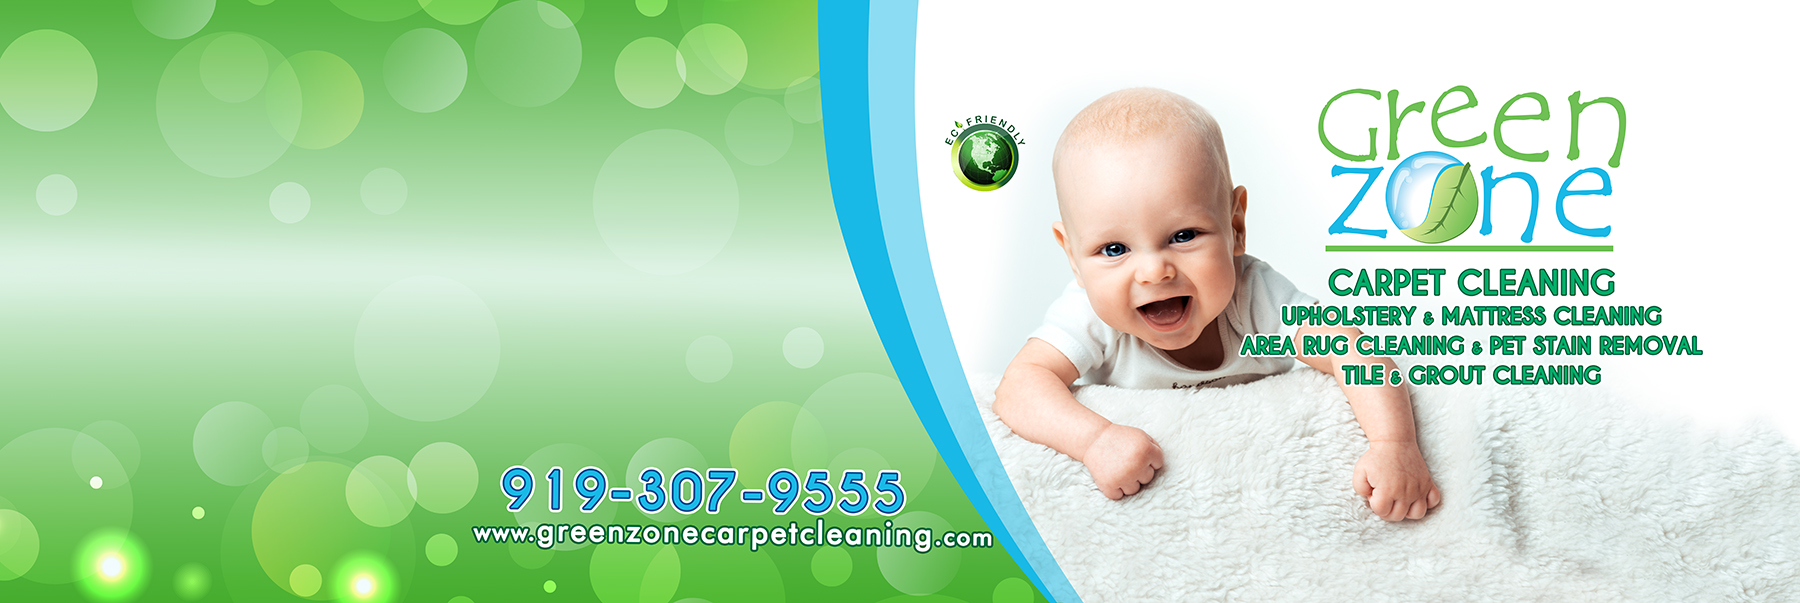 Carpet Tile And Grout Upholstery Cleaning Green